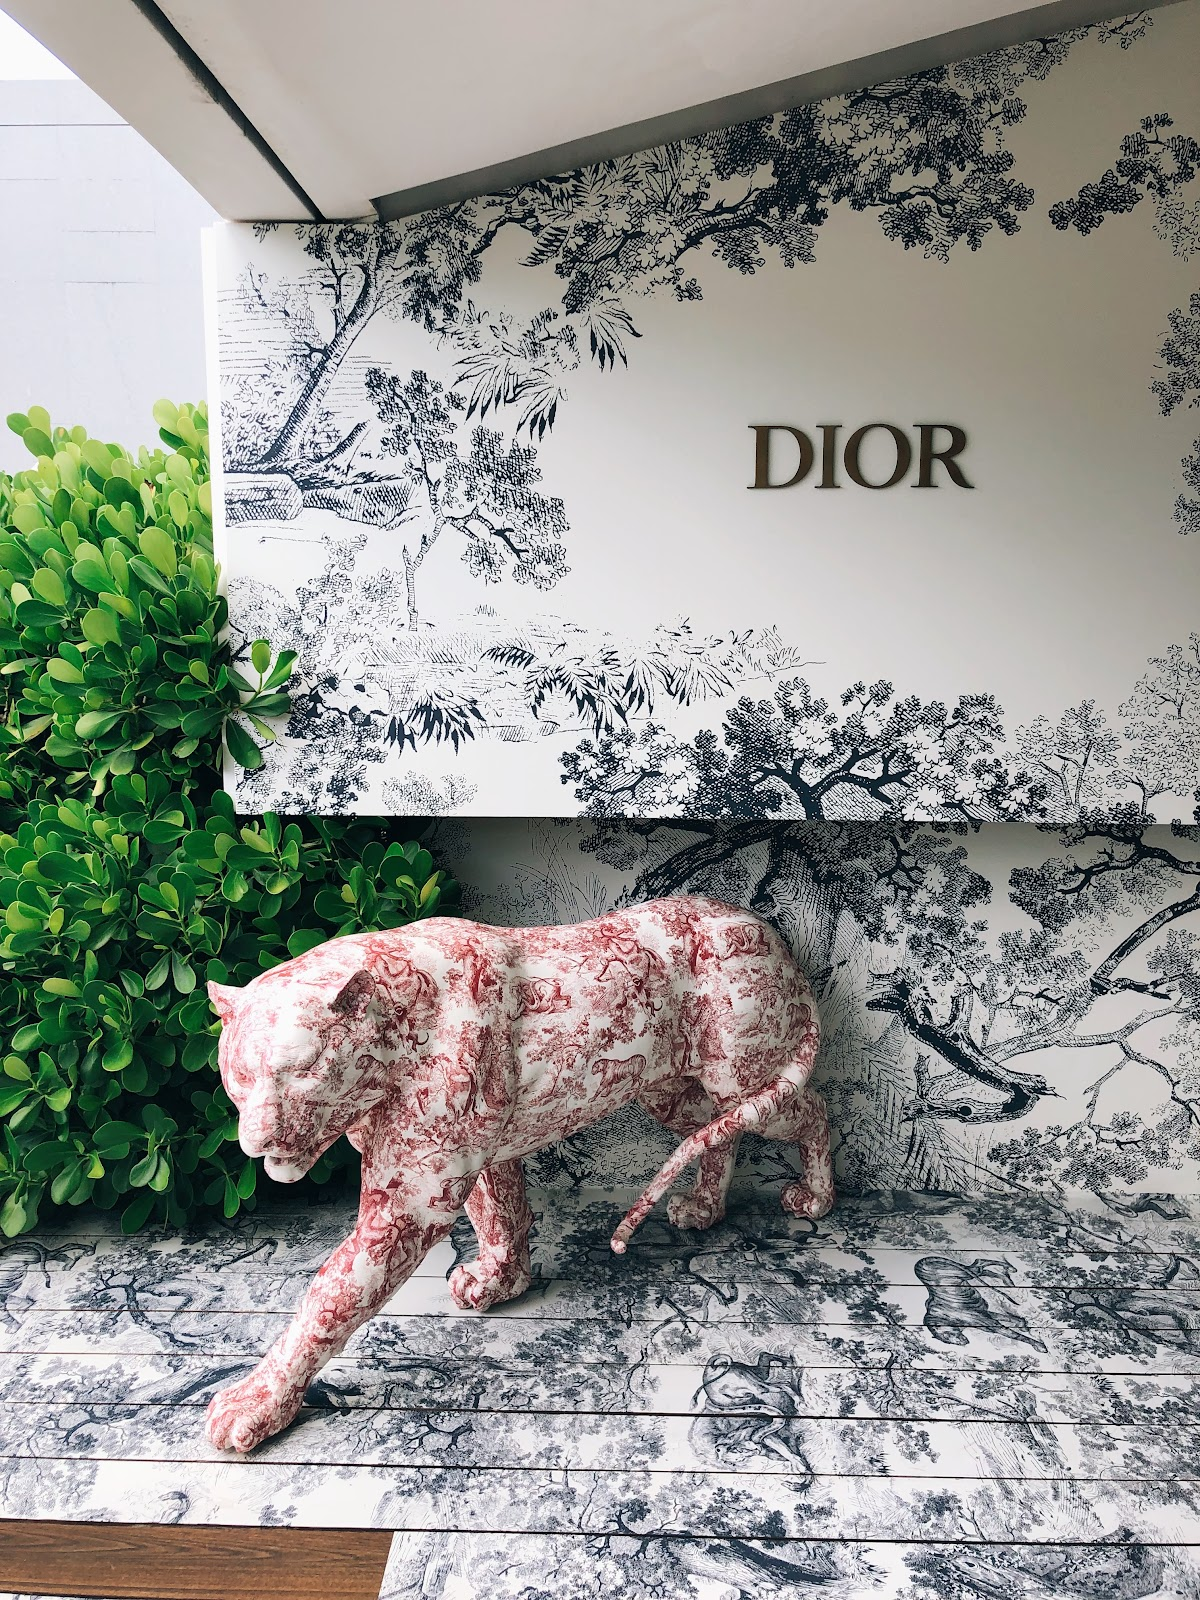 The dior café is the best thing to happen to miami design district